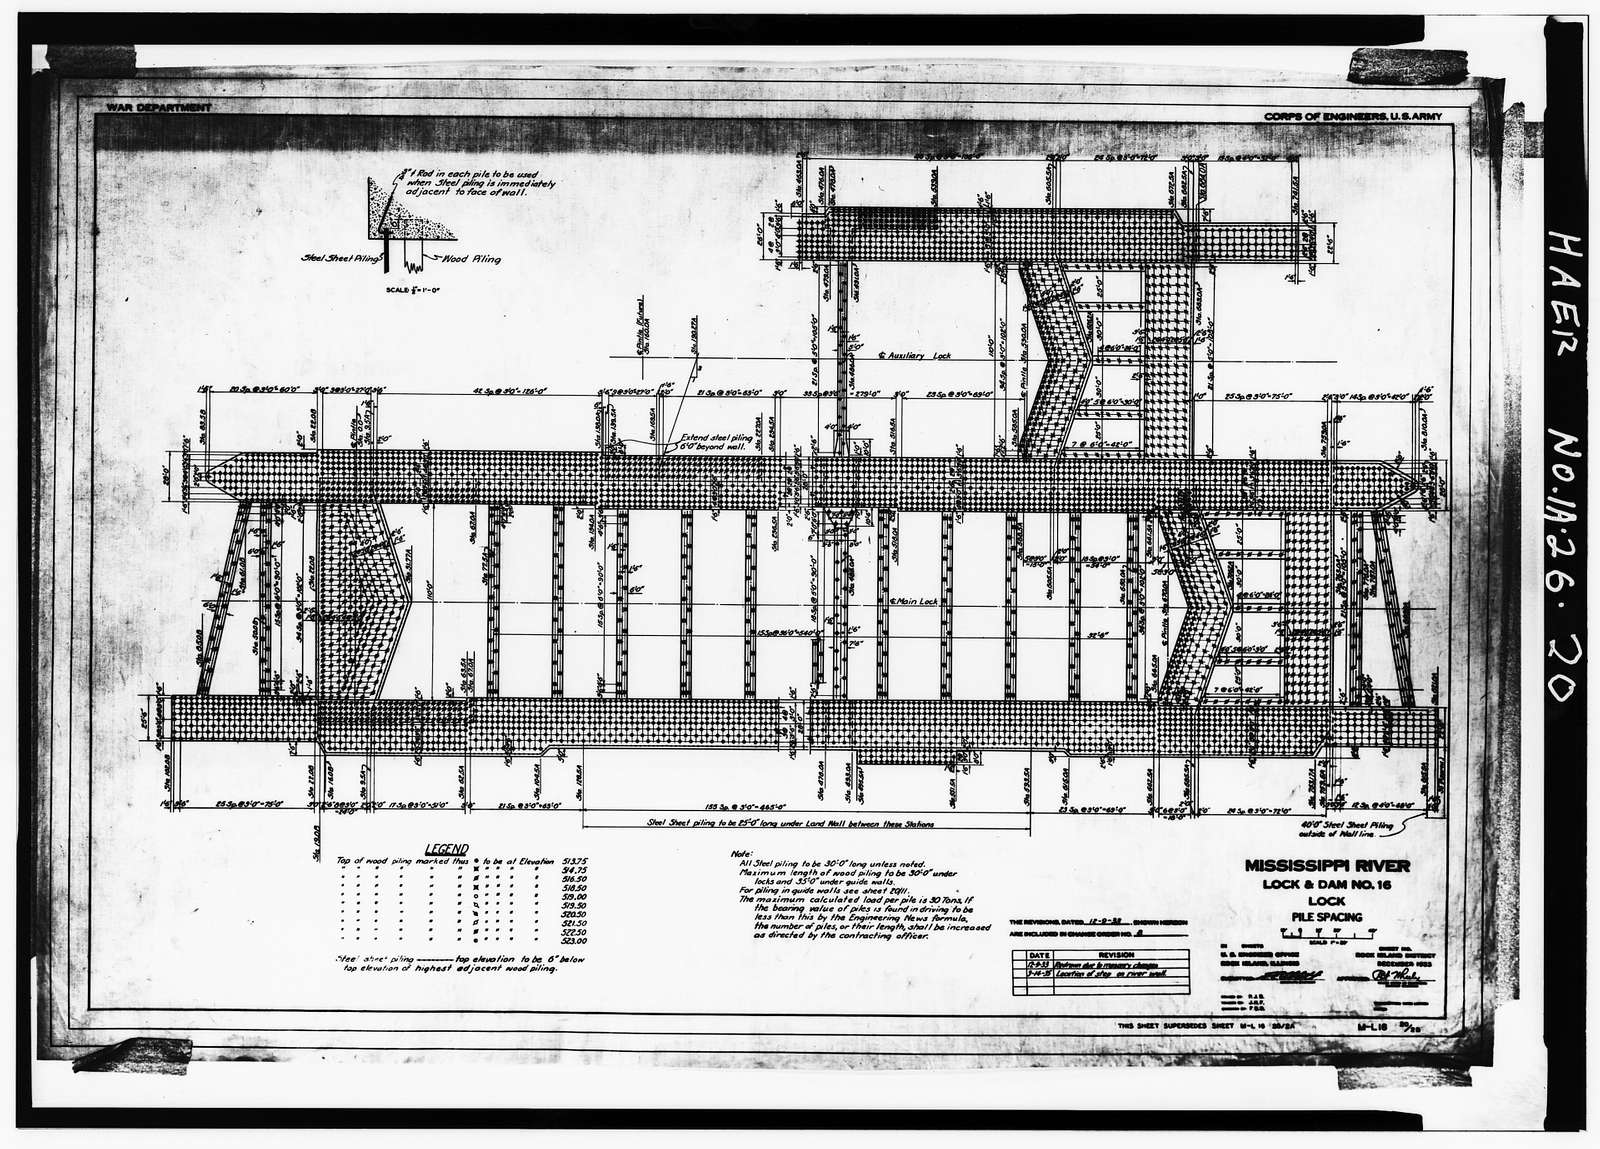 Mississippi River 9-Foot Channel Project, Lock & Dam No. 16, Upper Mississippi River, Muscatine, Muscatine County, IA